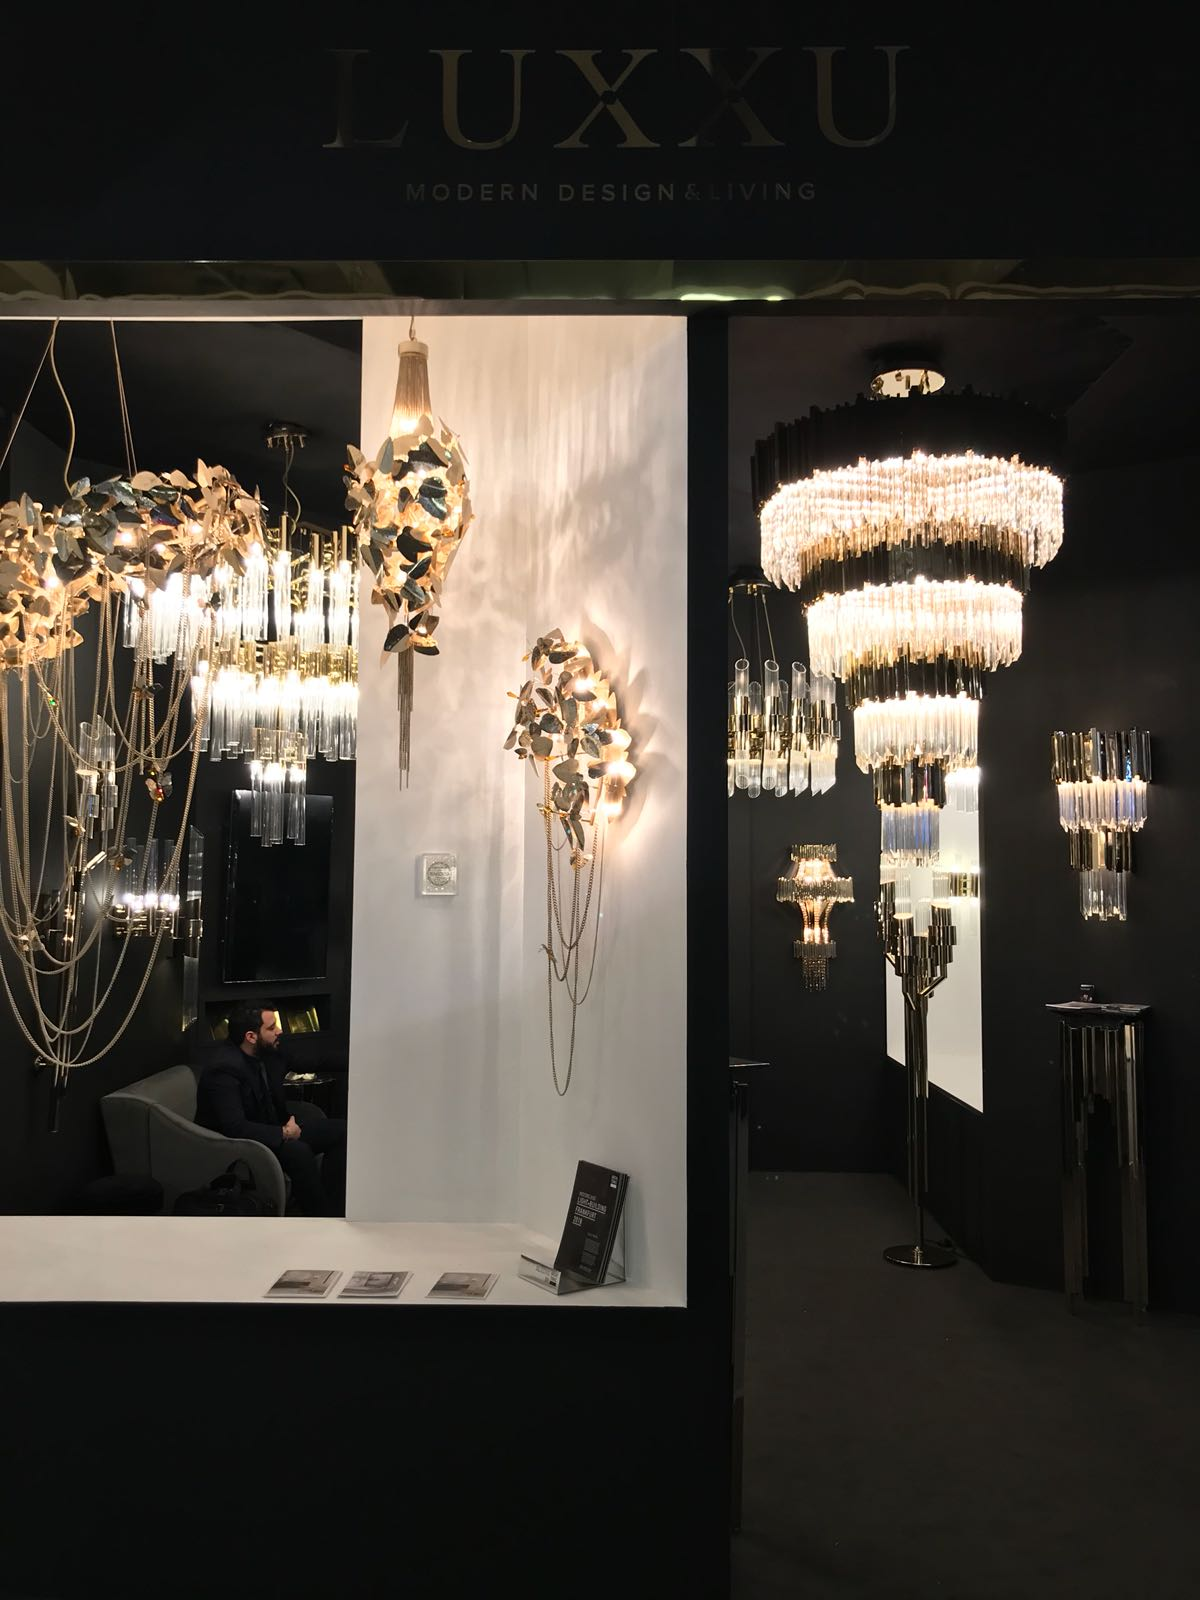 LUXXU's Highlights From Light + Building 2018 luxury decoration Do's and don'ts of luxury decoration LUXXUs Highlights From Light Building 2018 01 luxury decoration Do's and don'ts of luxury decoration LUXXUs Highlights From Light Building 2018 01